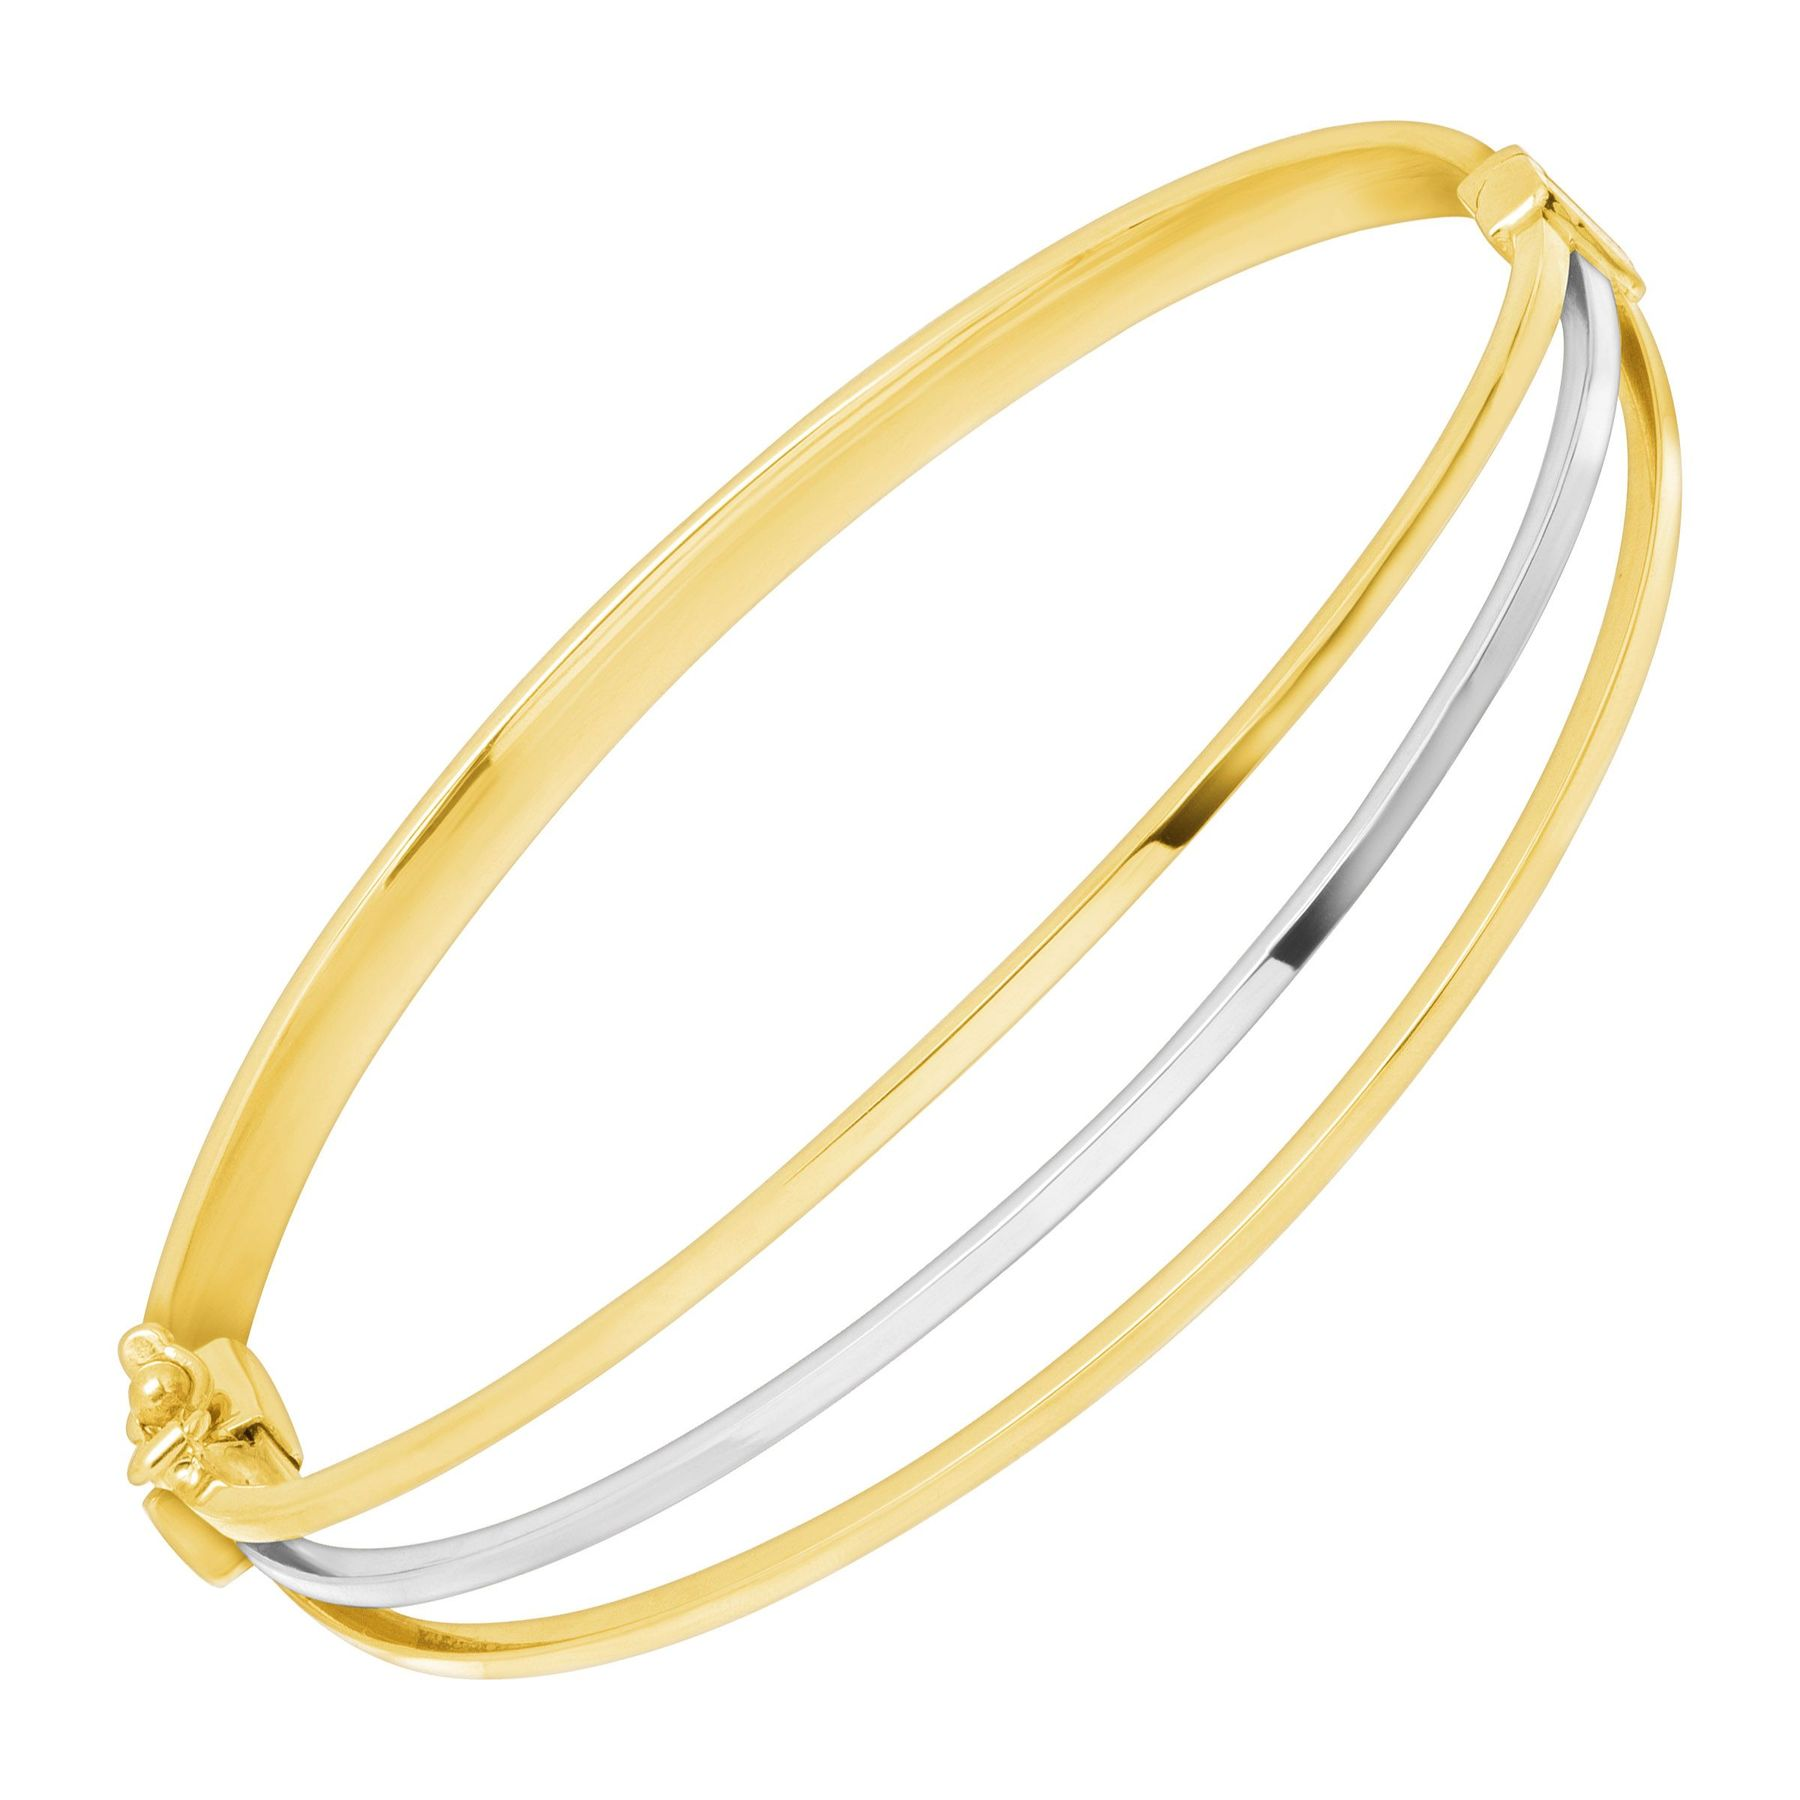 good cut clarity four round shape very average bangle bracelet bangles yellow prong p tennis hidden safety clasp i setting color tw type diamond box ct with gold